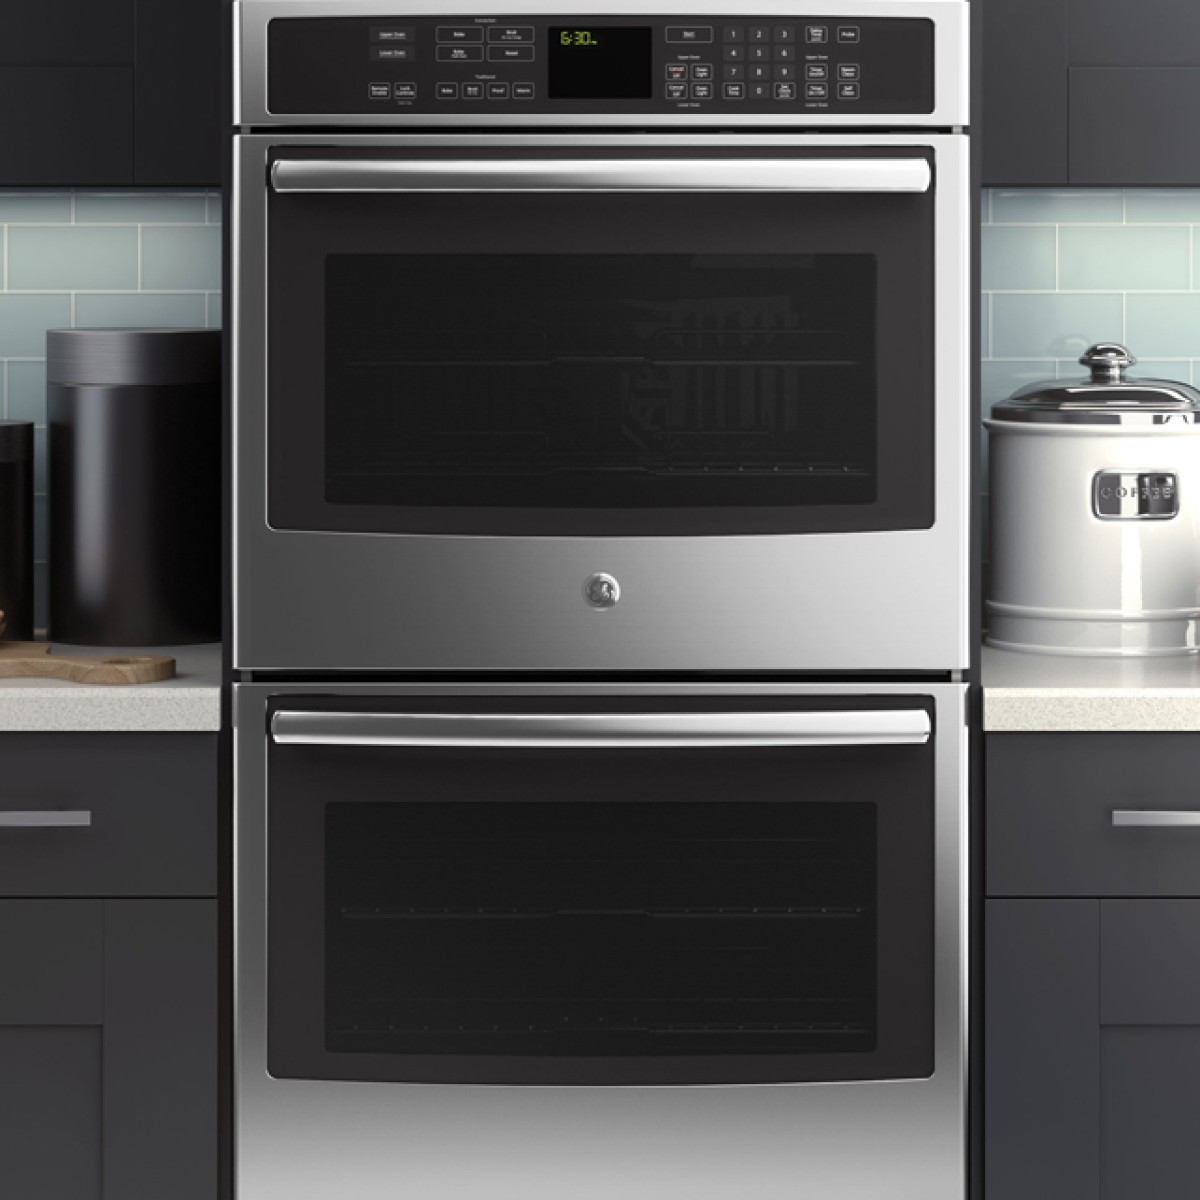 An elegant conventional oven,